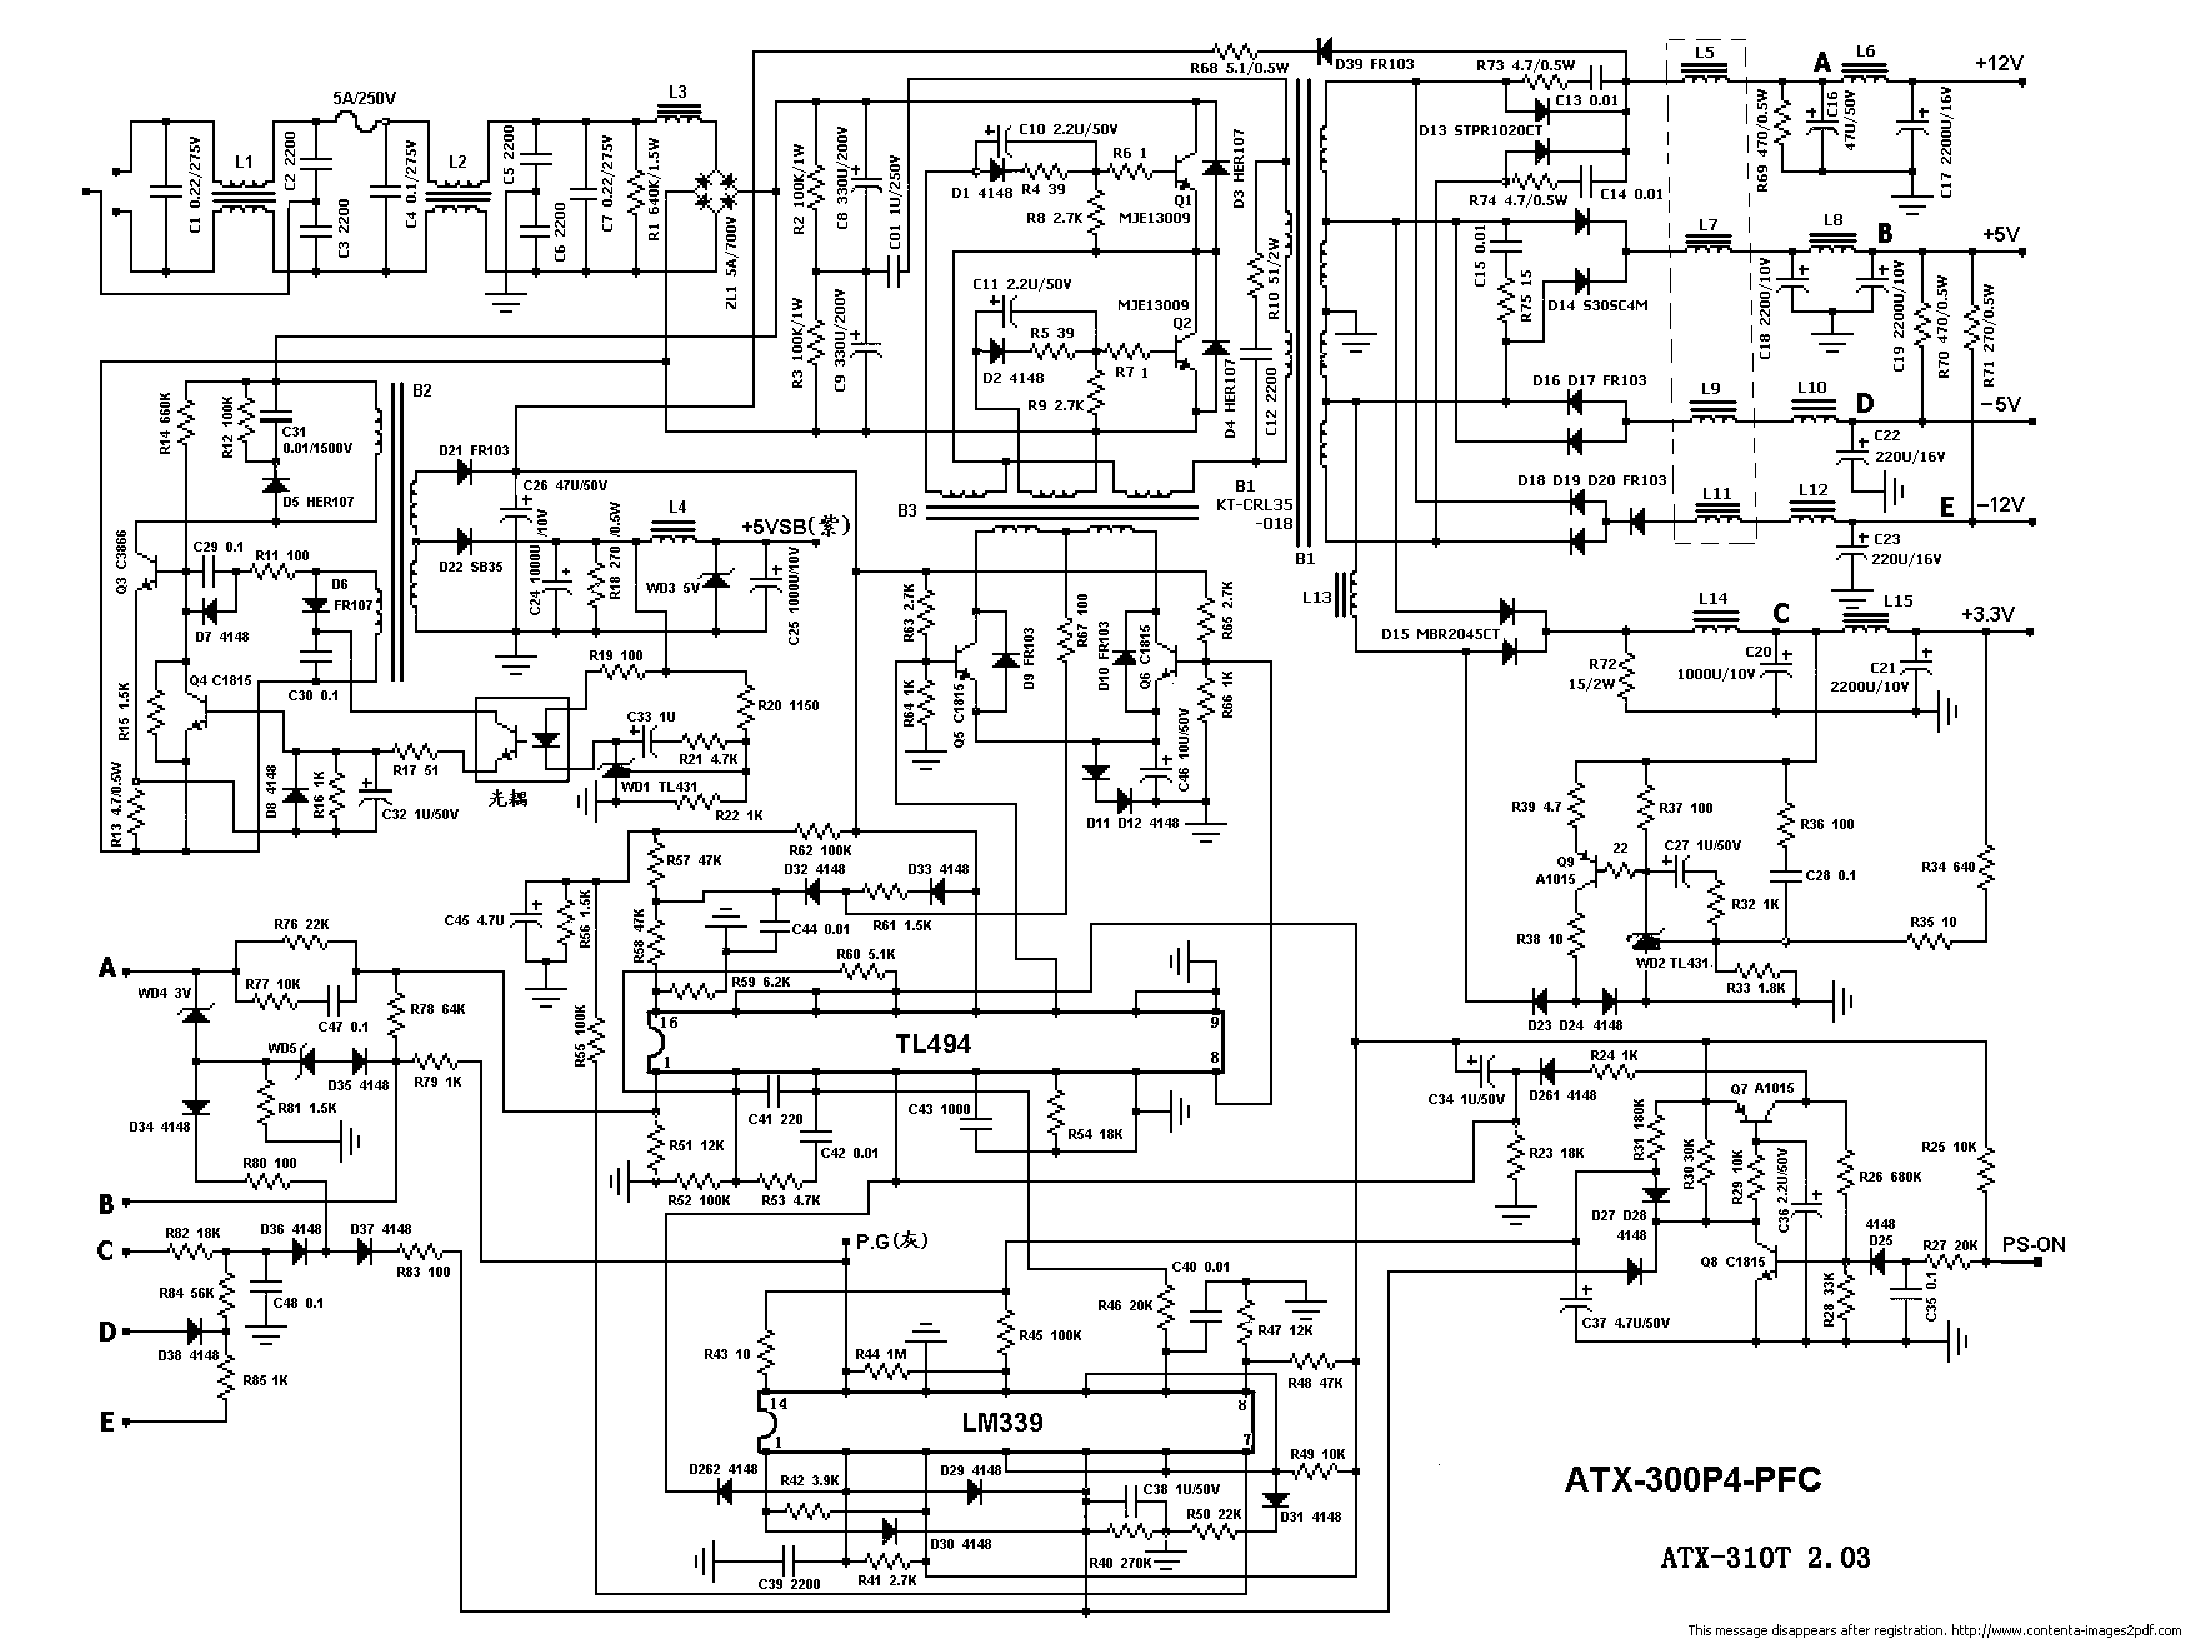 atx 300p4 pfc pc power supply sch manual de servicio descarga gratuita inside wiring diagram [ 2185 x 1638 Pixel ]